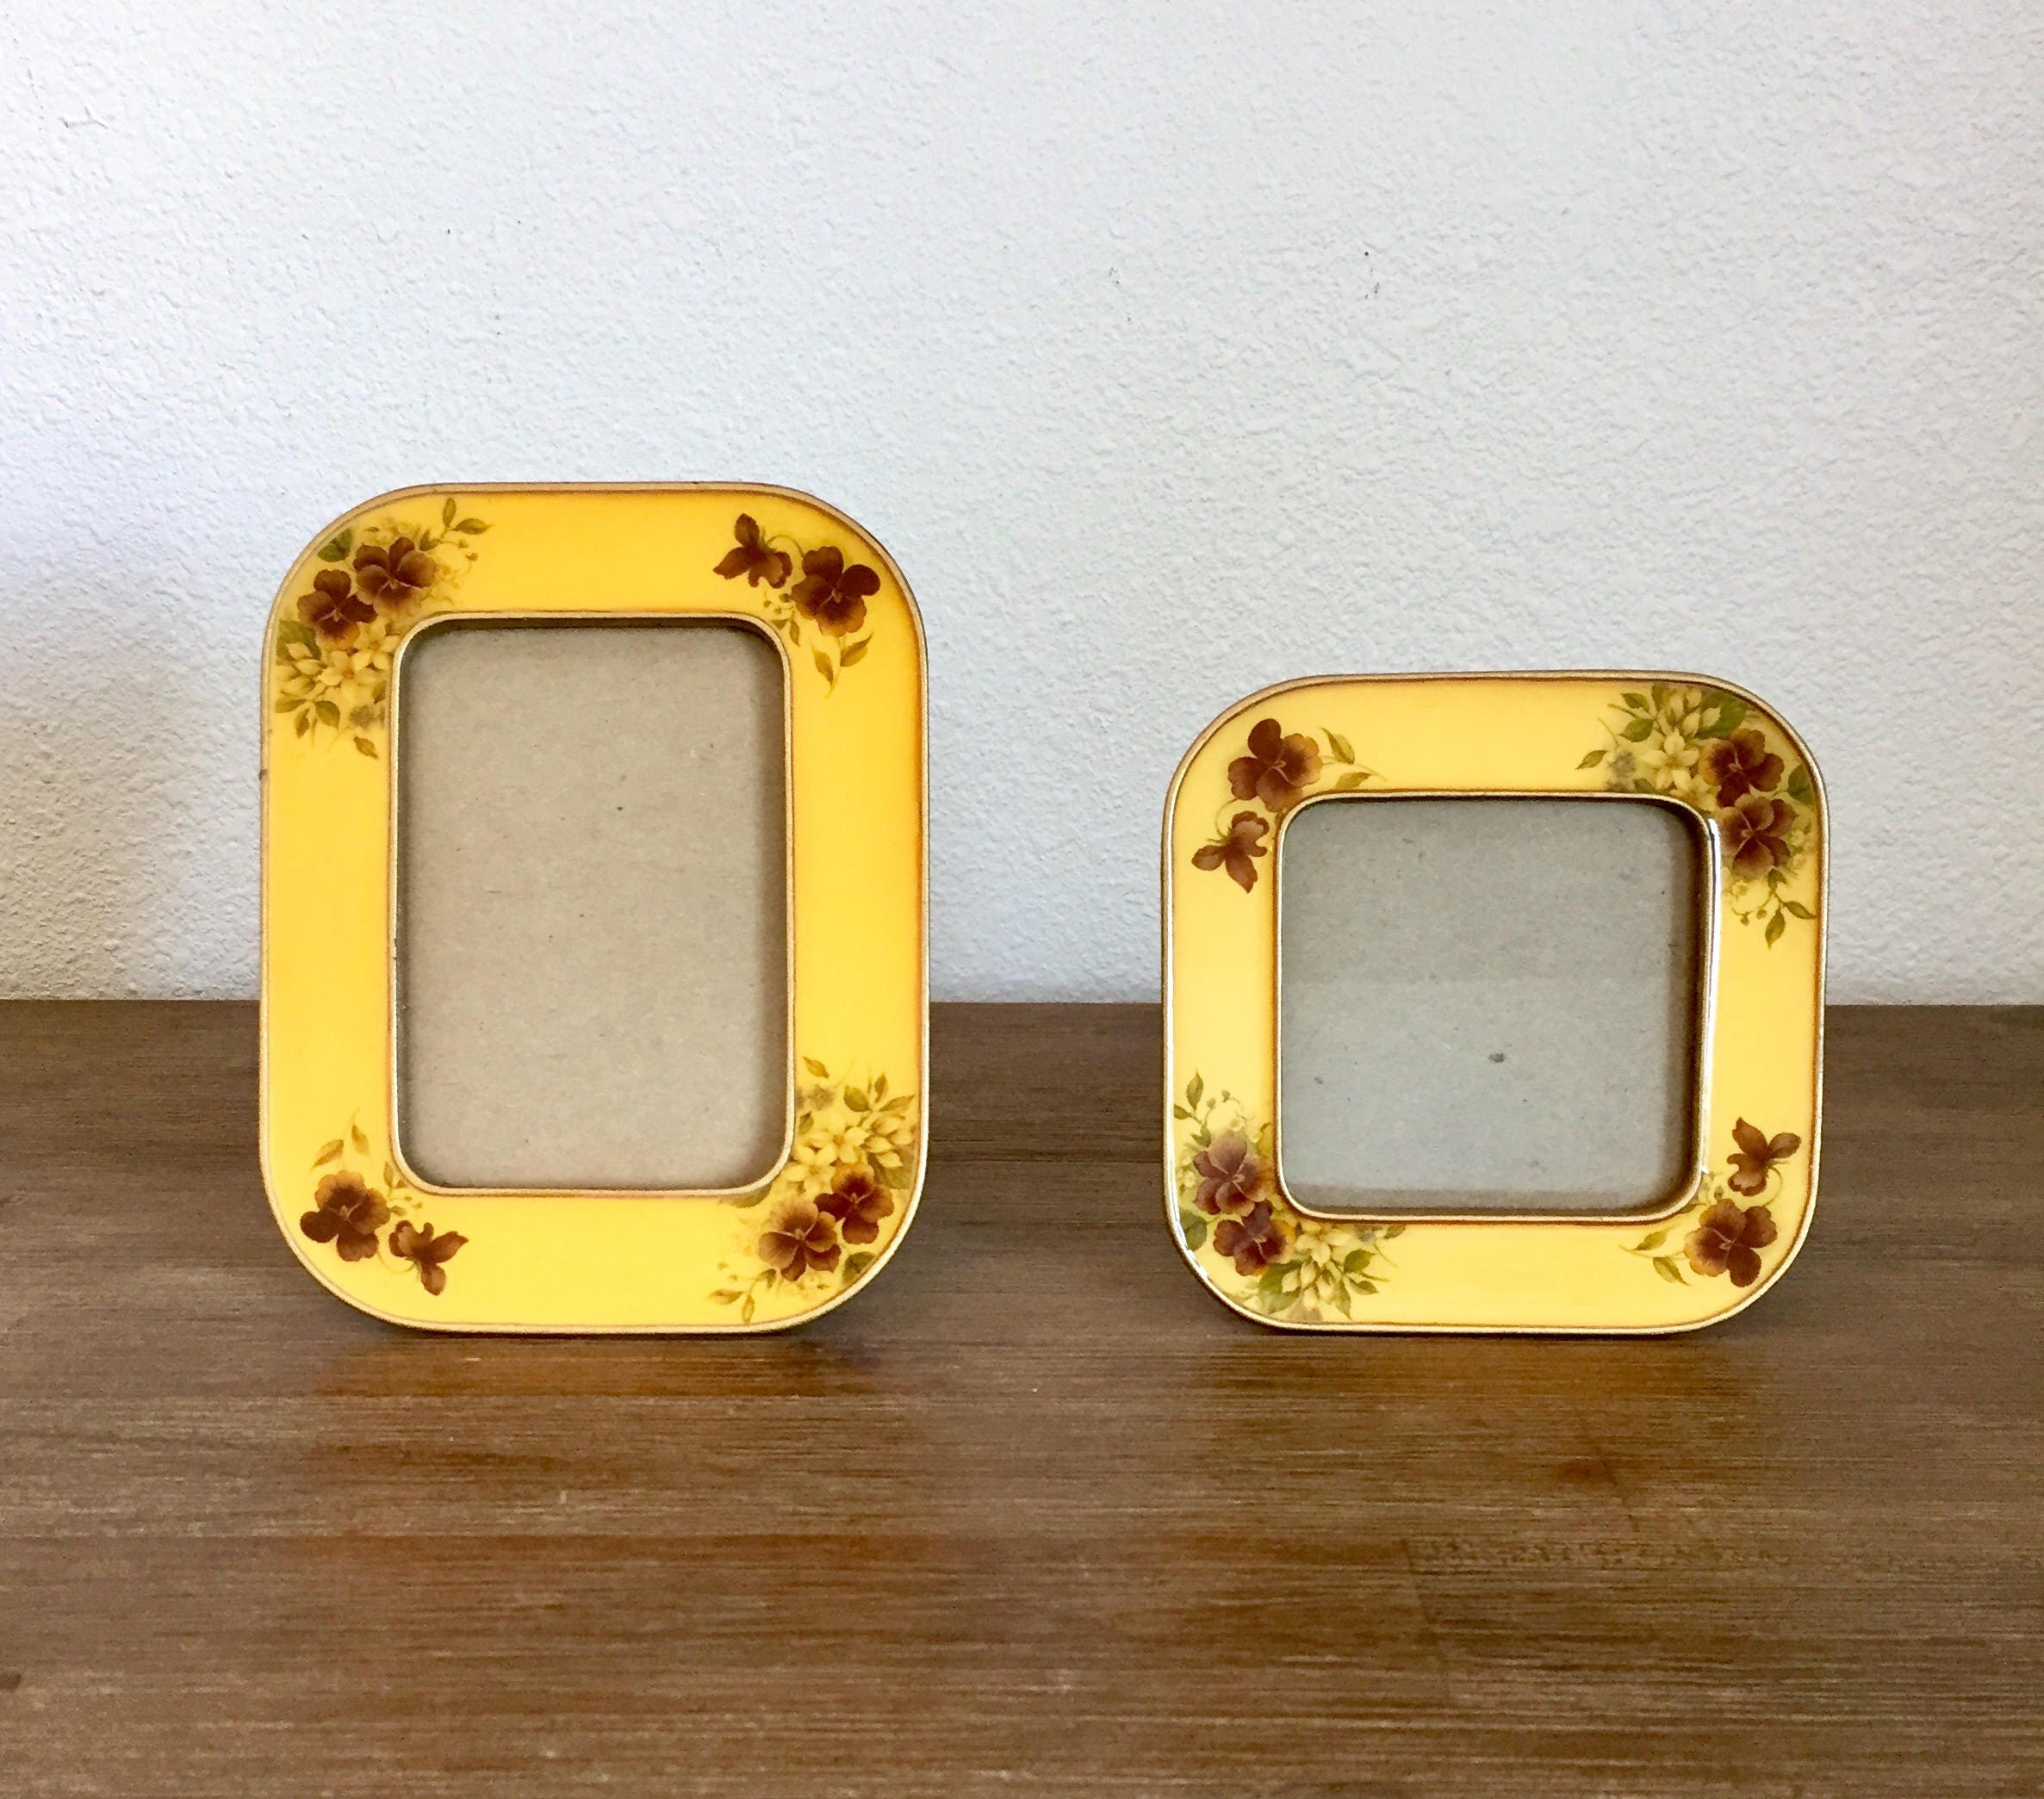 sold by speckadoos - Enamel Picture Frames